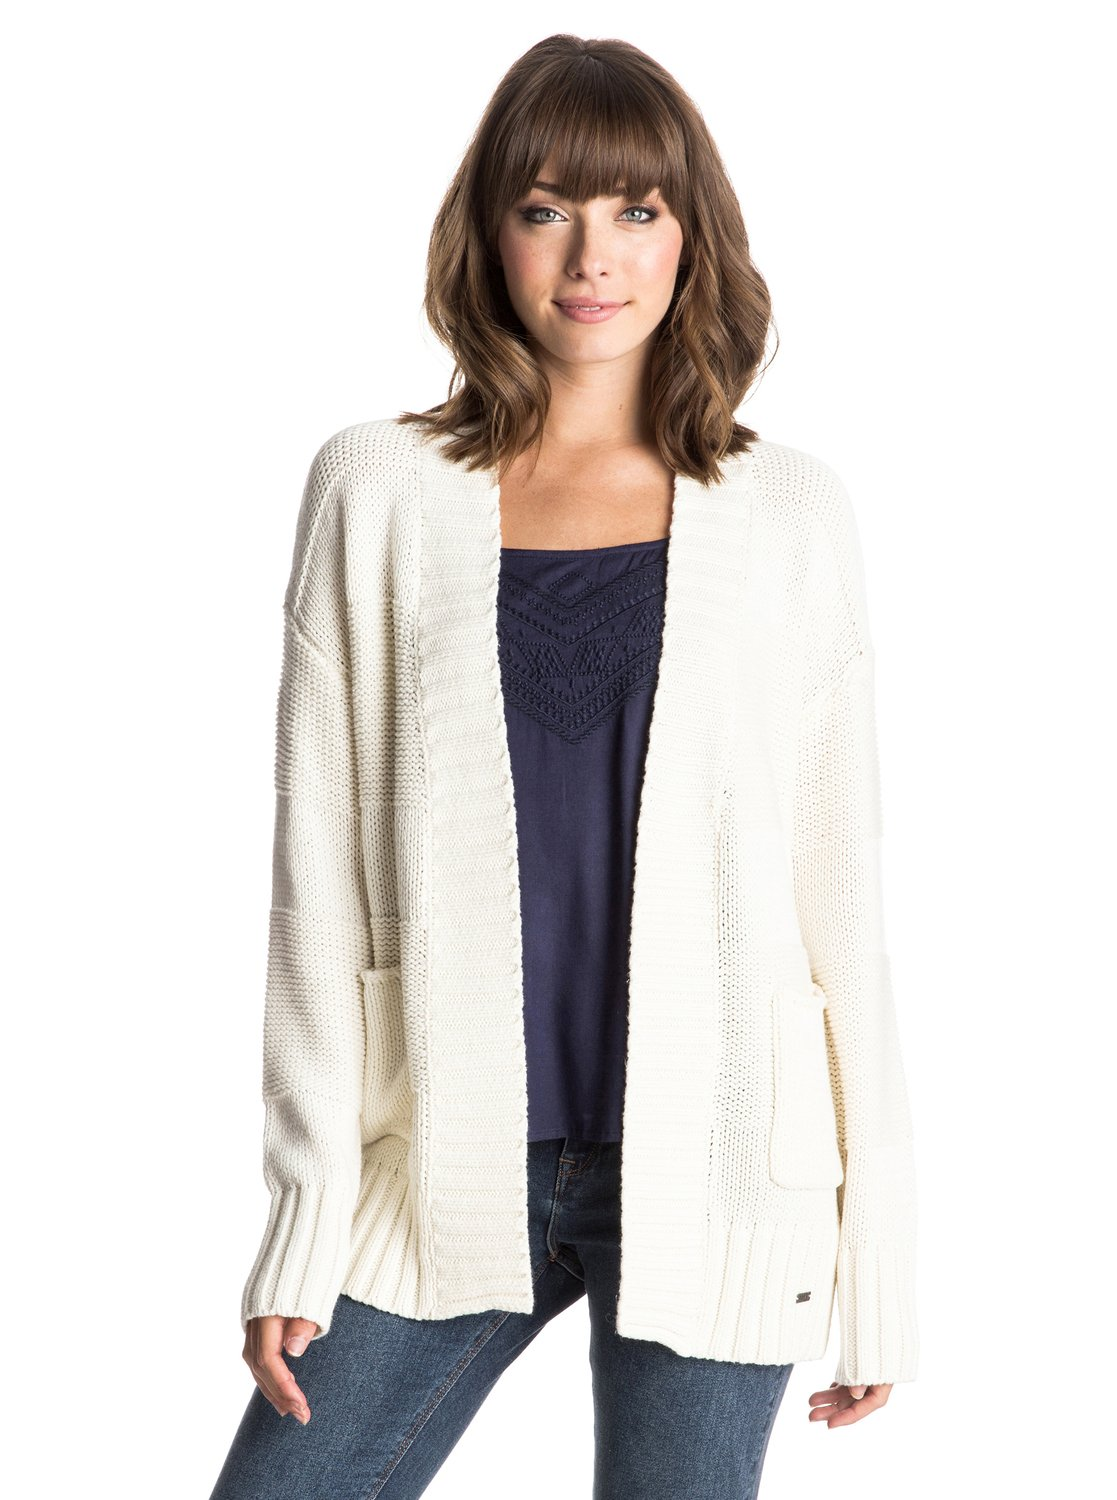 Женский кардиган Oysters And Pearls Roxy Women's Oysters And Pearls Cardigan